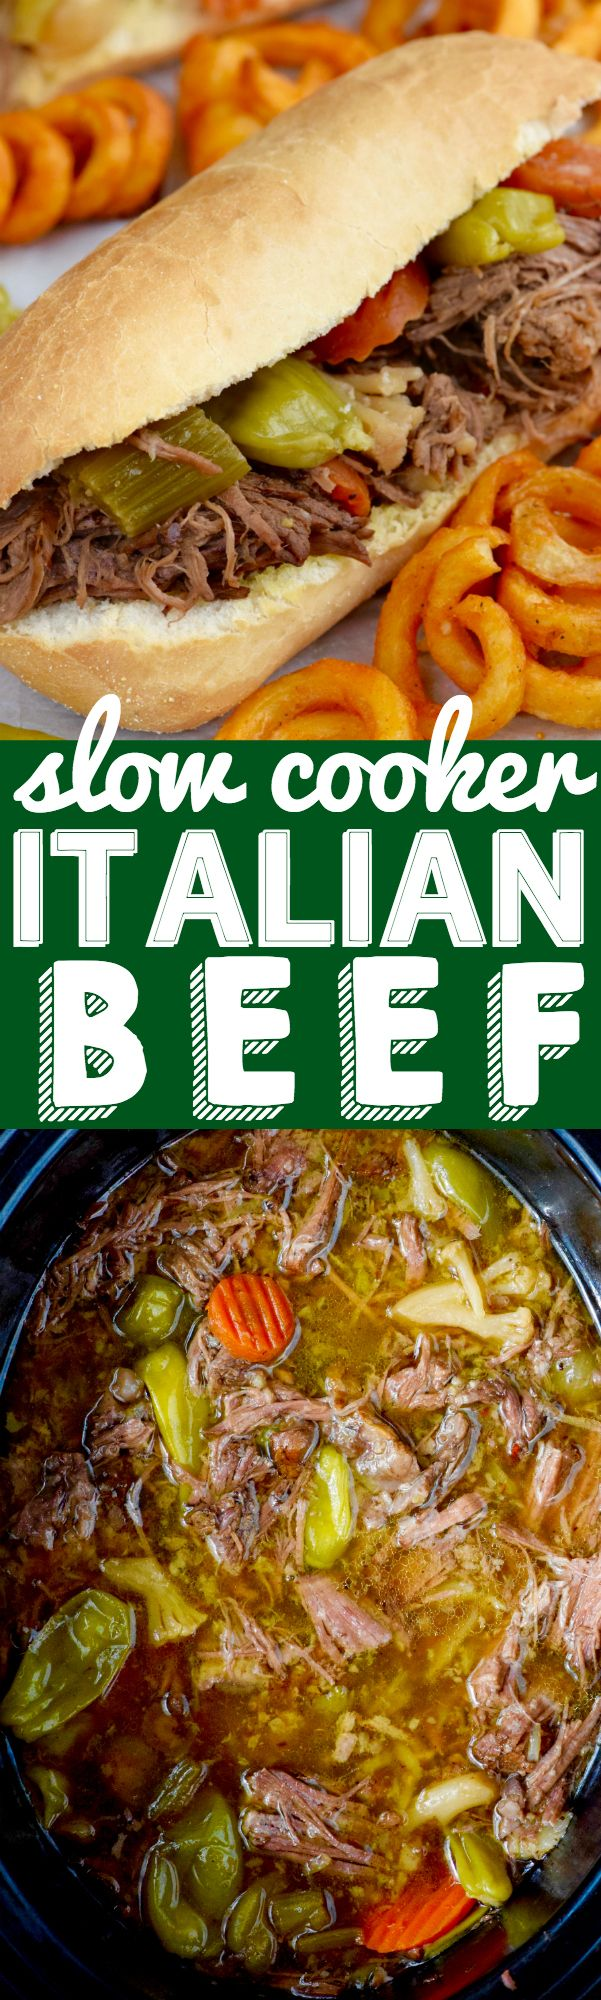 These Slow Cooker Italian Beef Sandwiches are about 10 minutes of hands on time for a delicious dinner the family will love!: